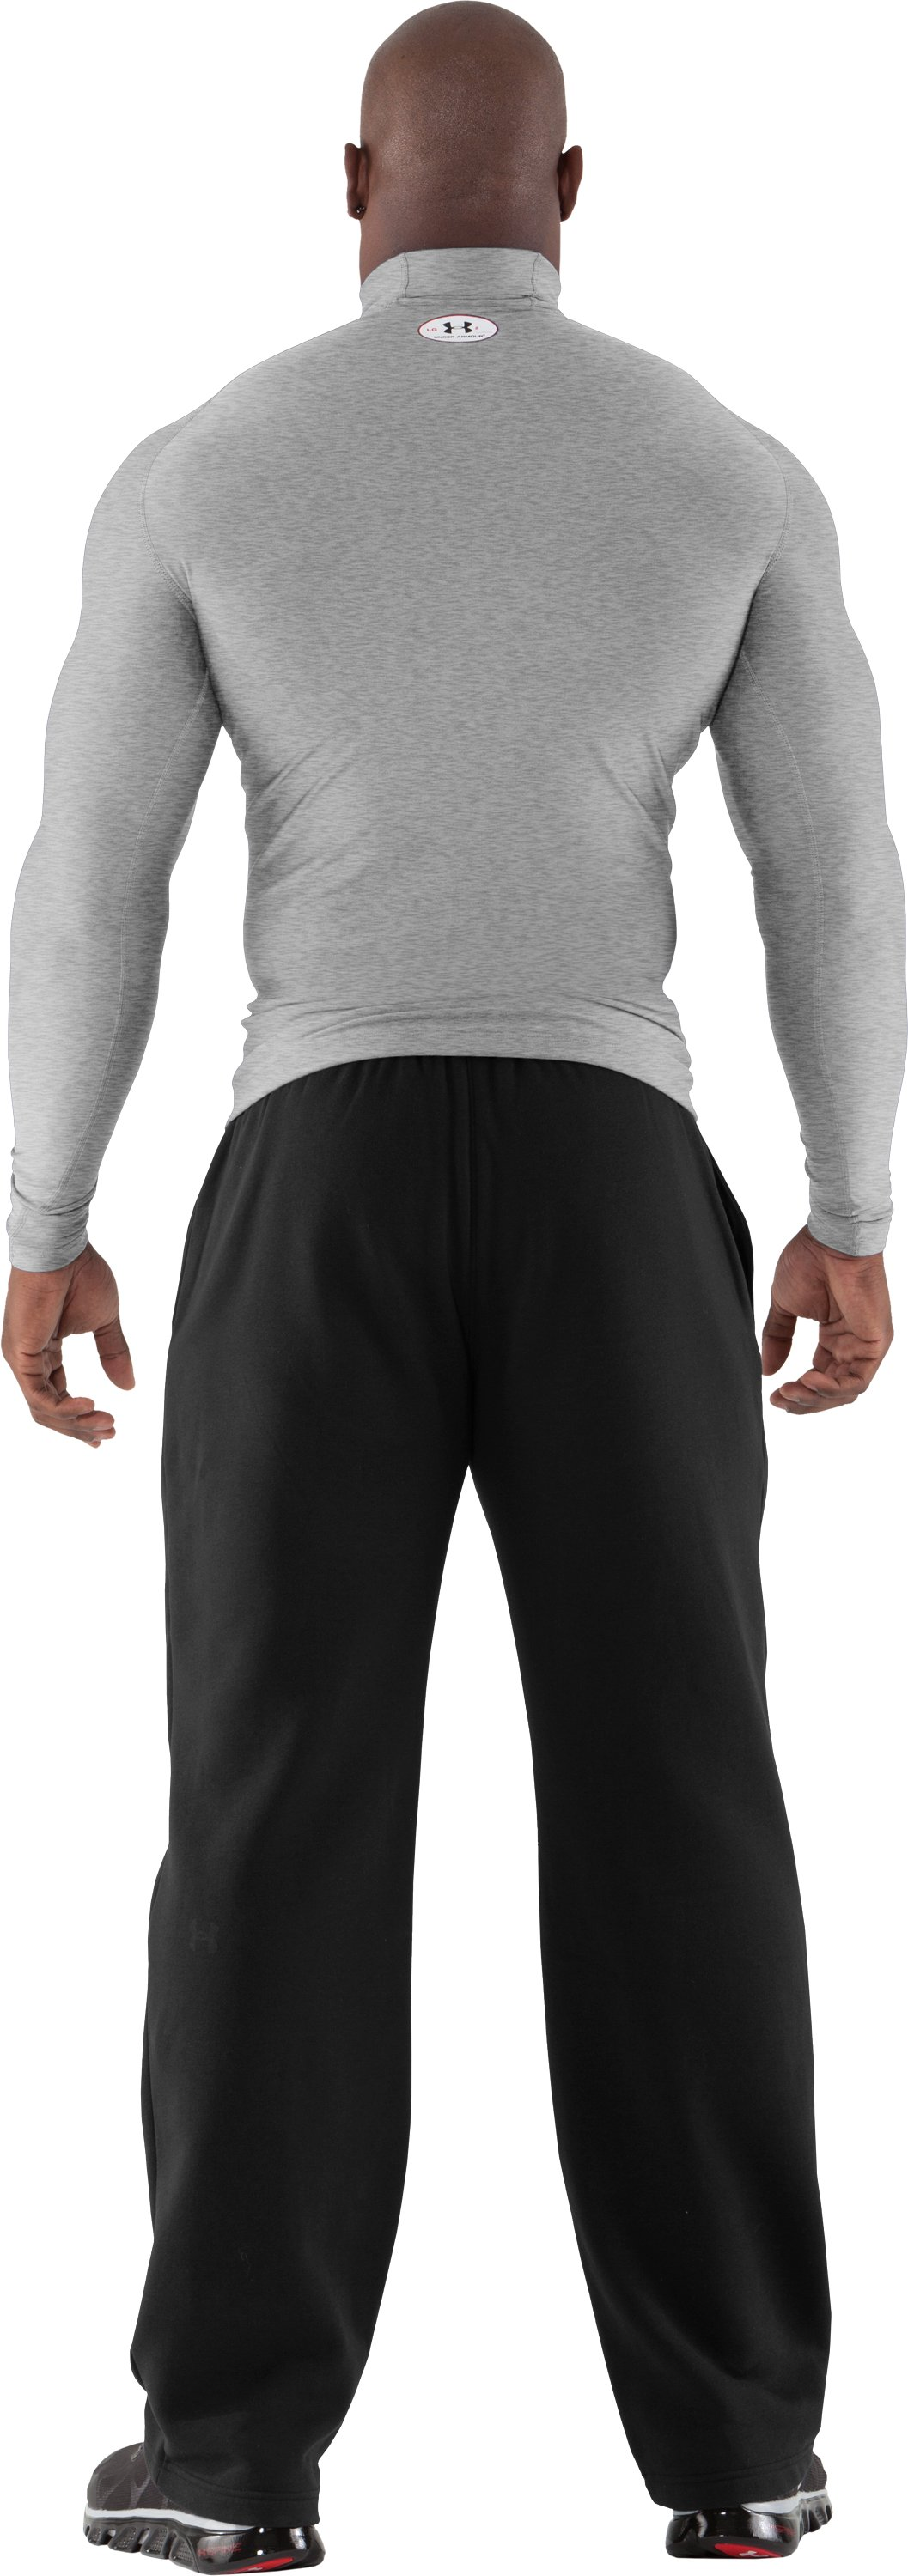 Men's ColdGear® Evo Long Sleeve Compression Mock, True Gray Heather, Back